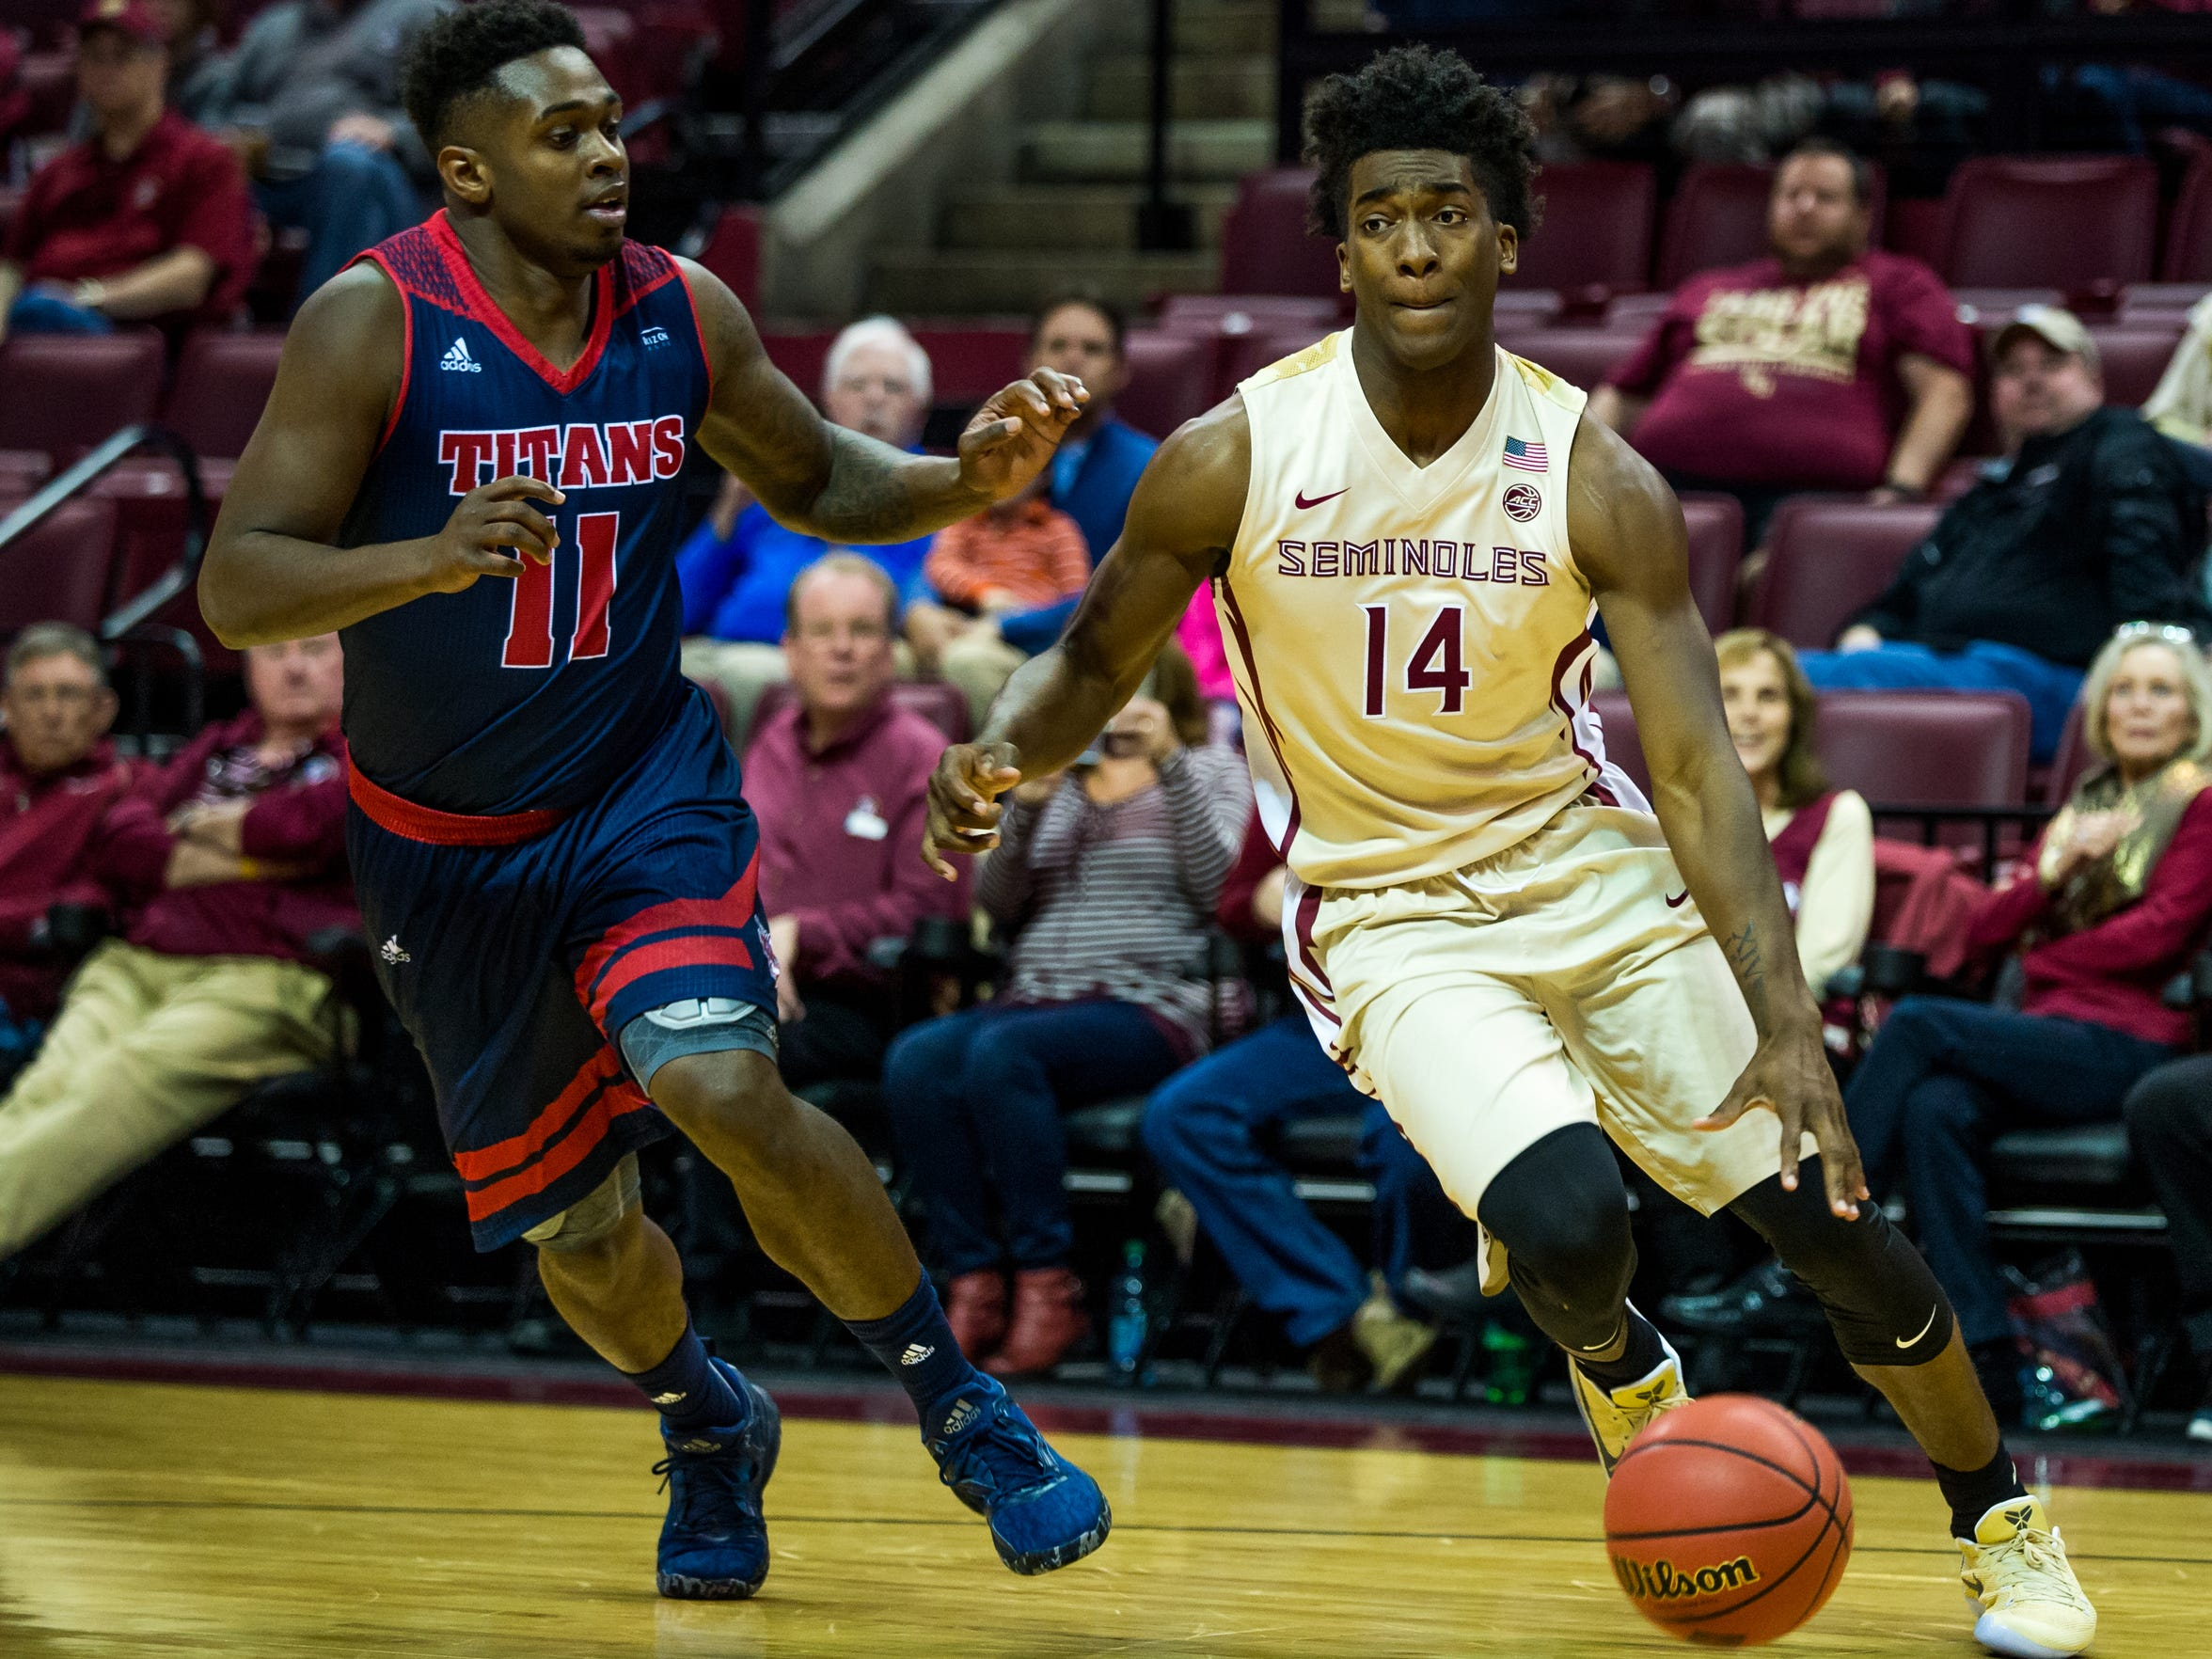 Mann has become one of FSU's most versatile players.